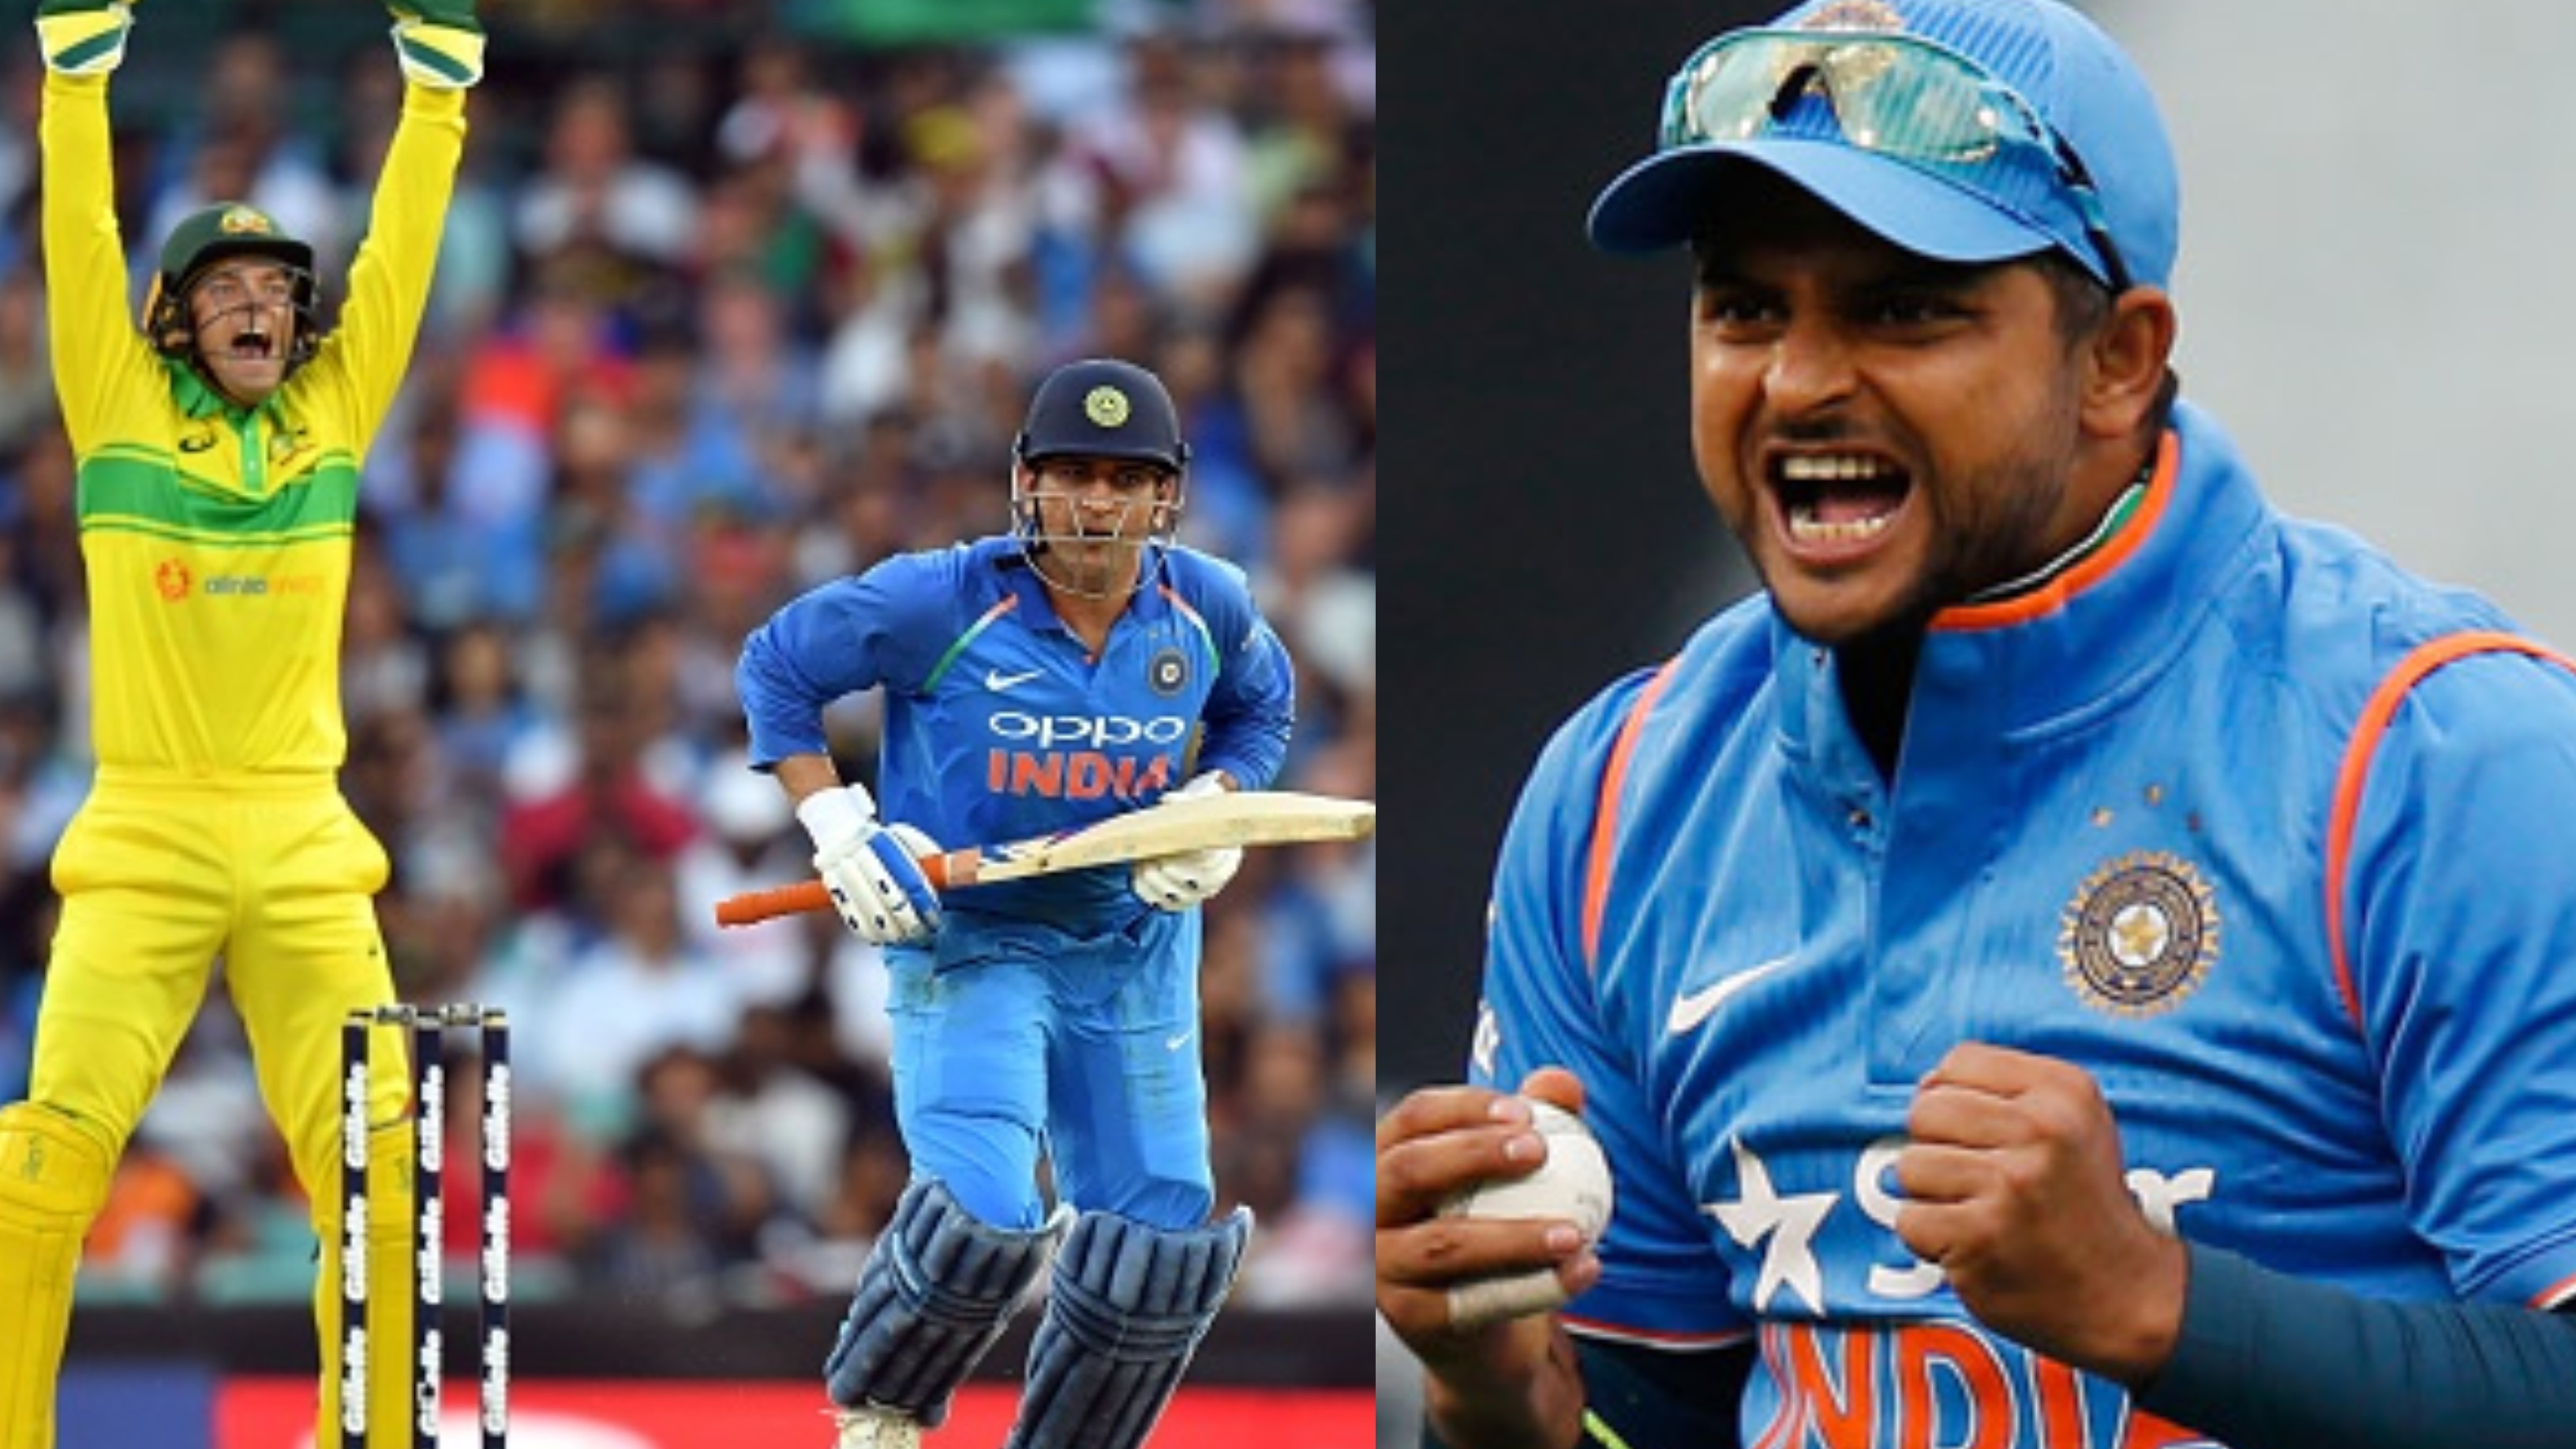 AUS v IND 2018-19: Suresh Raina congratulates MS Dhoni on becoming the fifth batsman to score 10,000 ODI runs for India